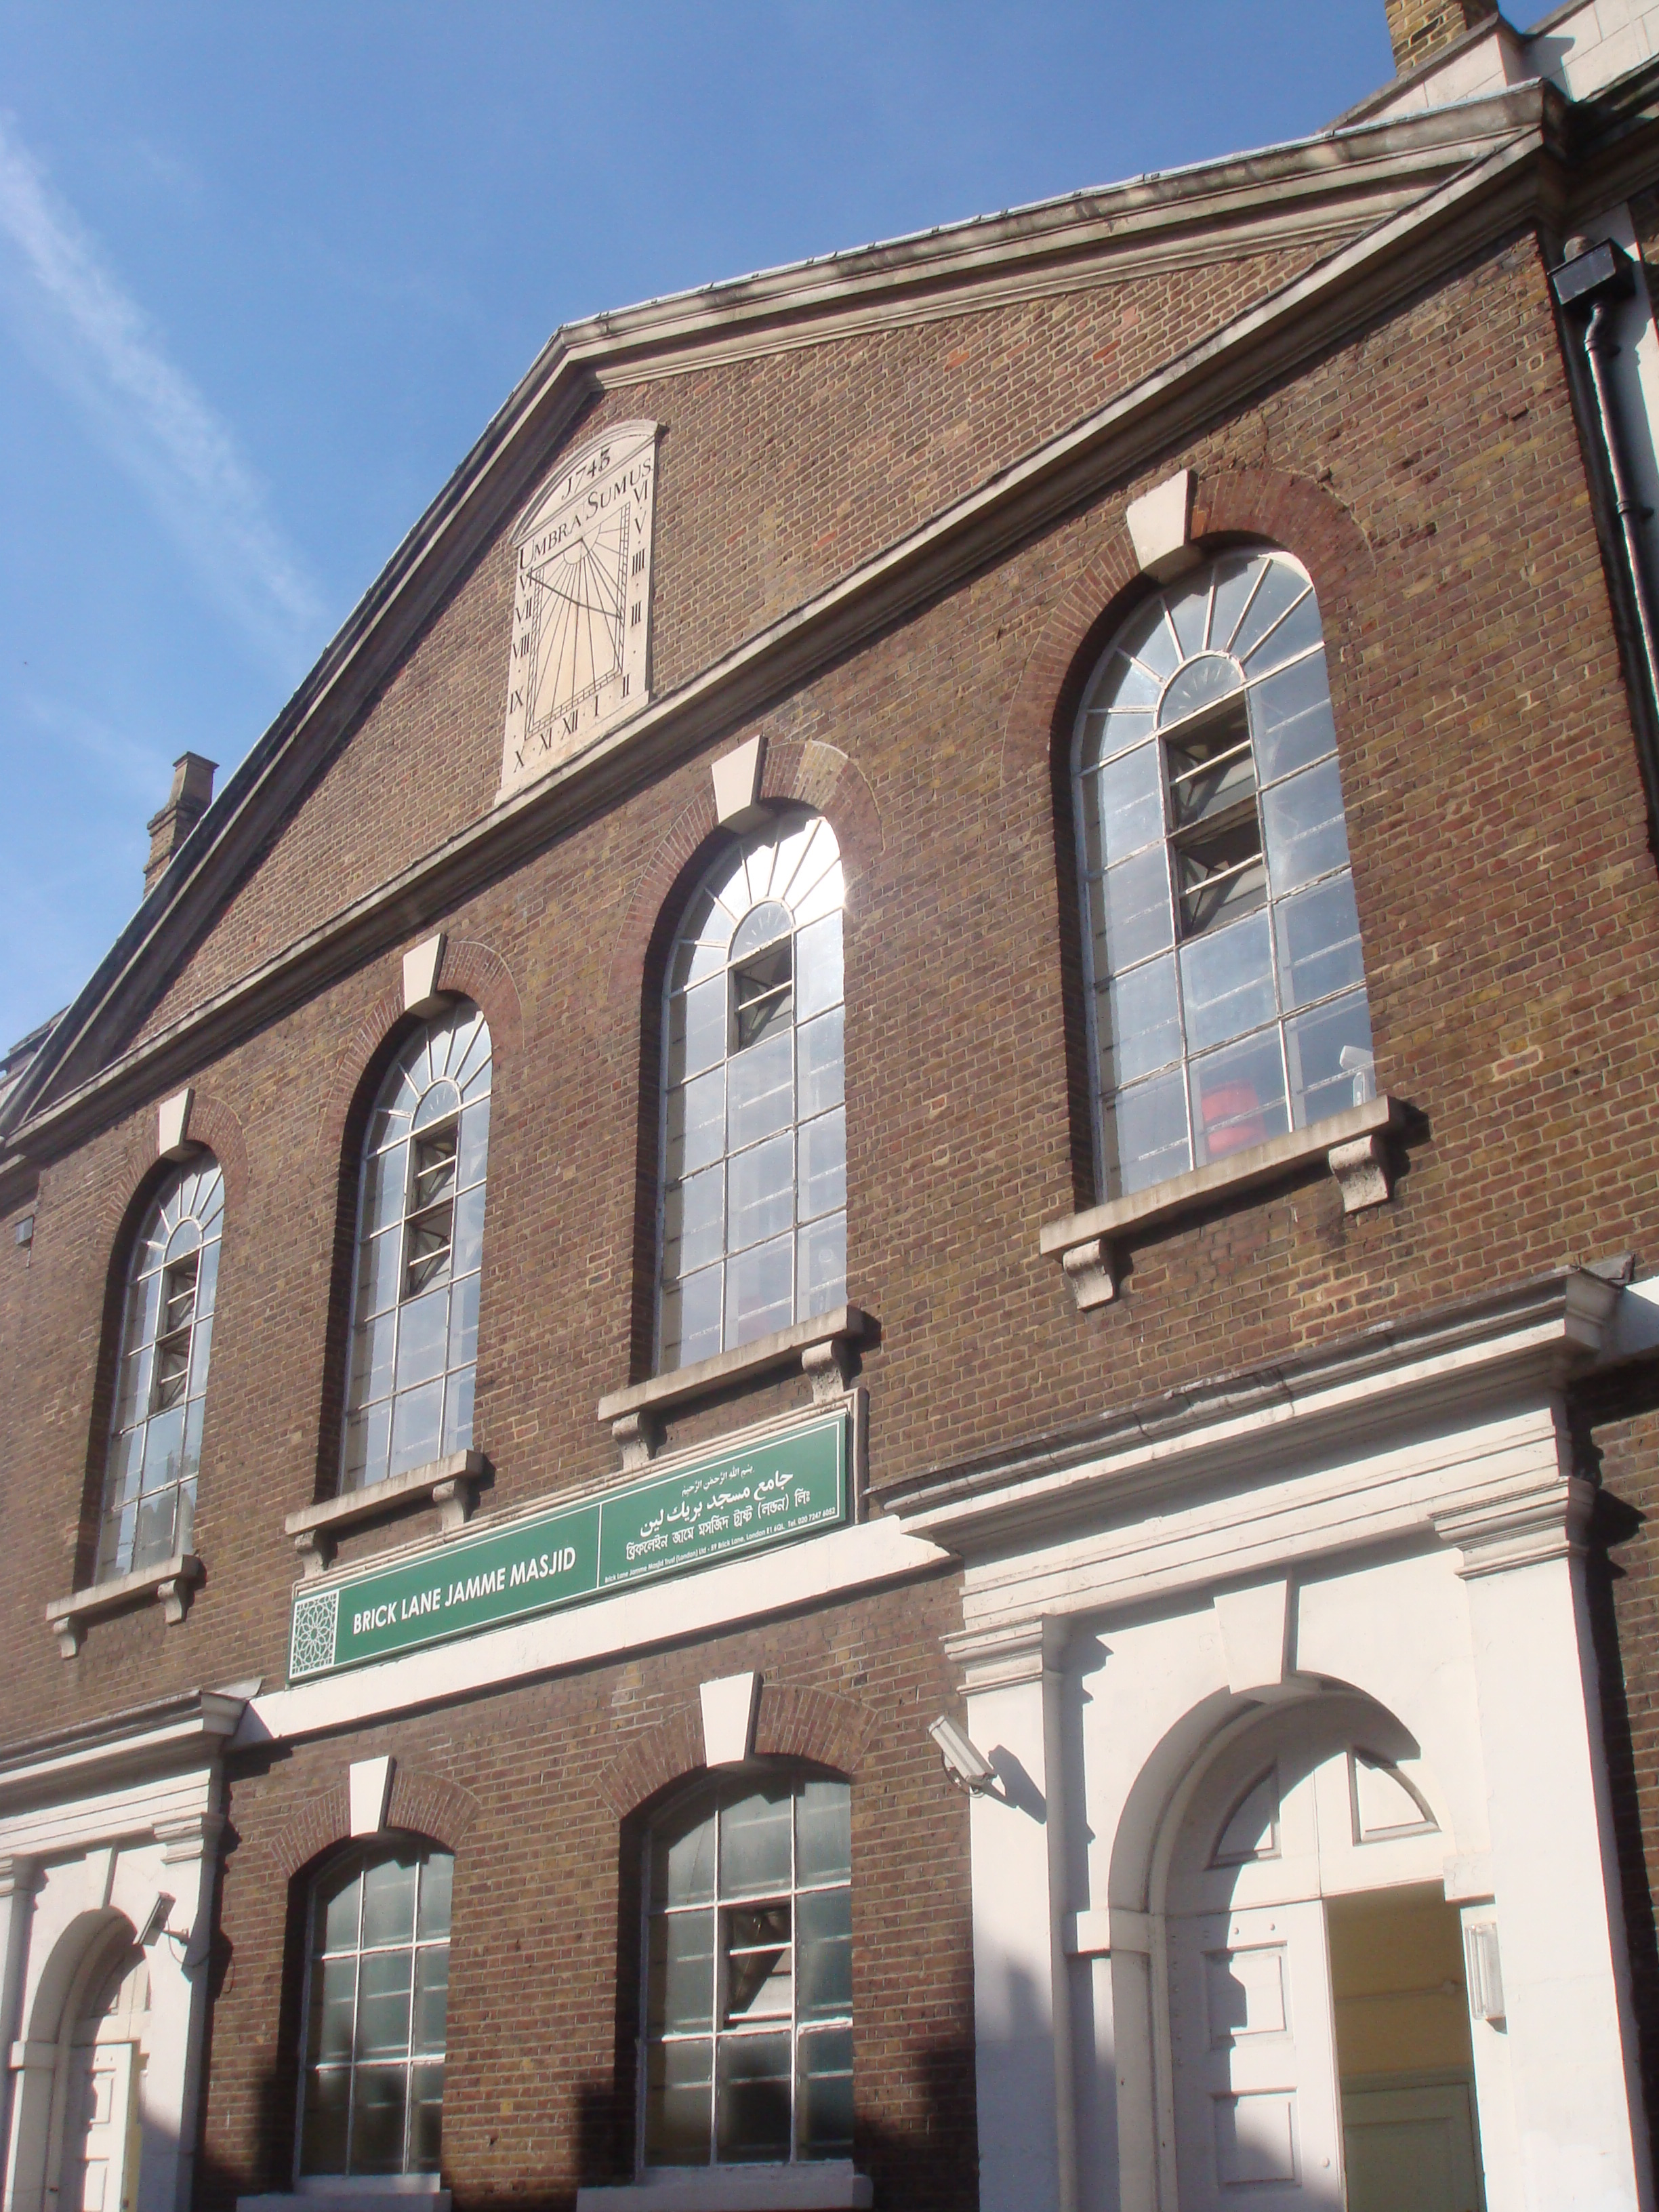 Brick_Lane_Mosque2.JPG